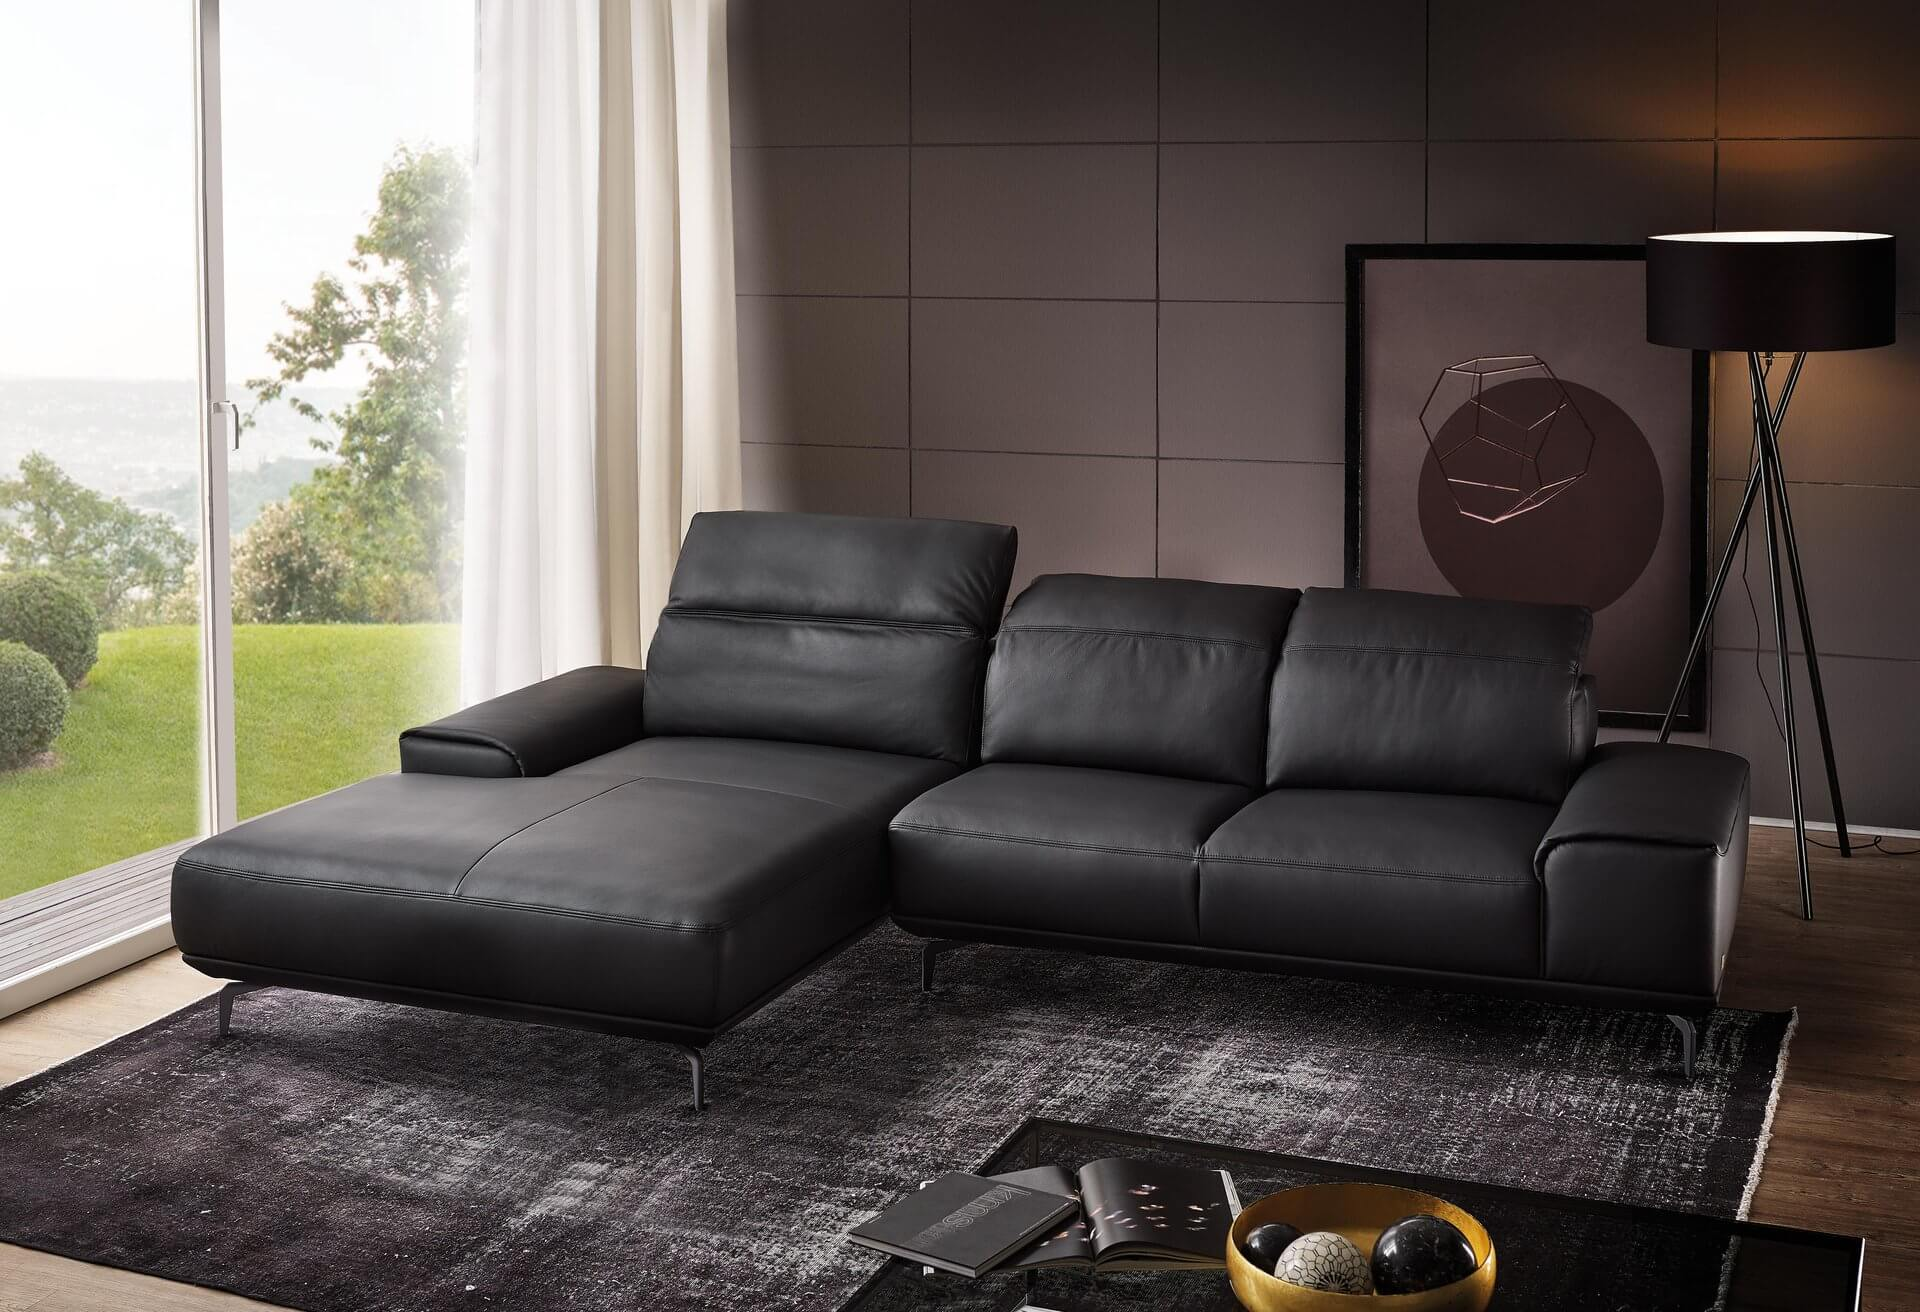 Ledersofa Anthrazit Mr 2490 Musterring